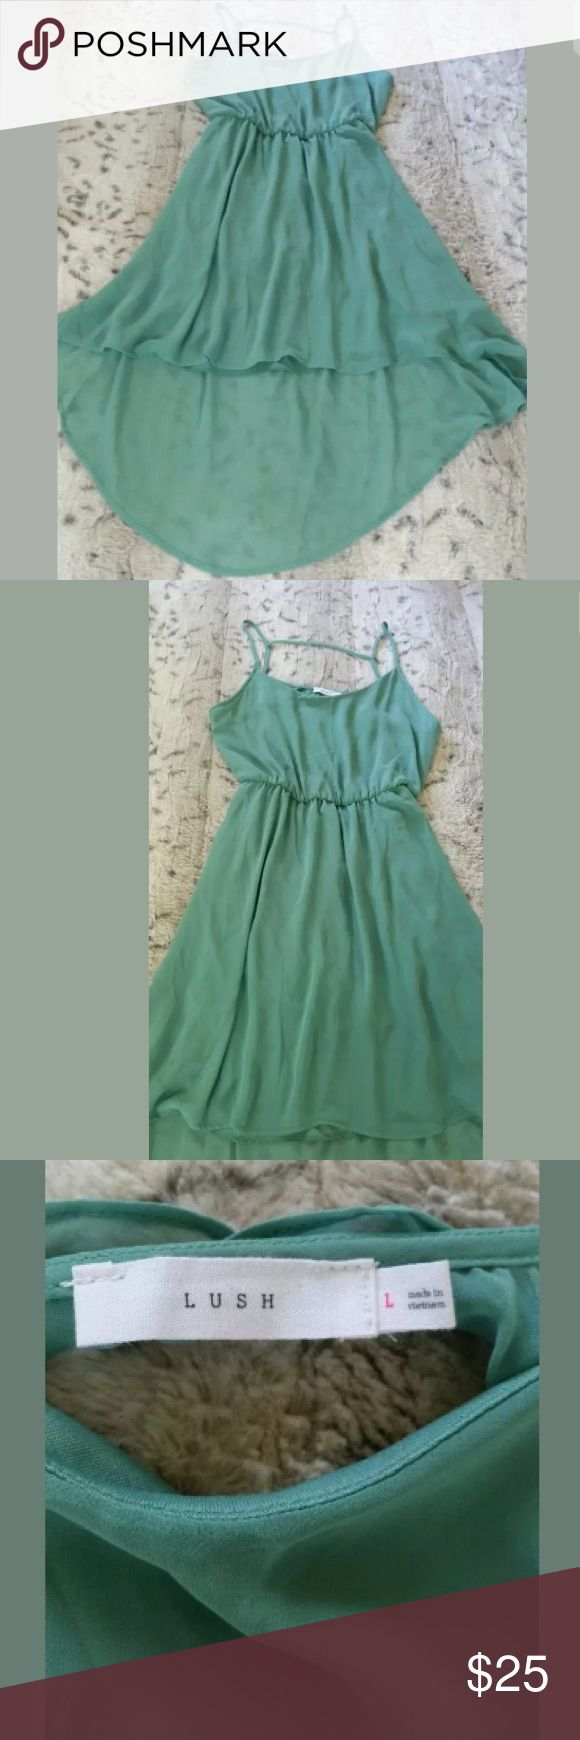 """Women's High Low Dress Mint Green Womens Lush Mint Green High Low Casual Summer Dress With Keyhole Back Size Large   100% Polystyrene   Length at its longest 33 1/2""""  Length at its shortest 28 1/2"""" Lush Dresses High Low"""